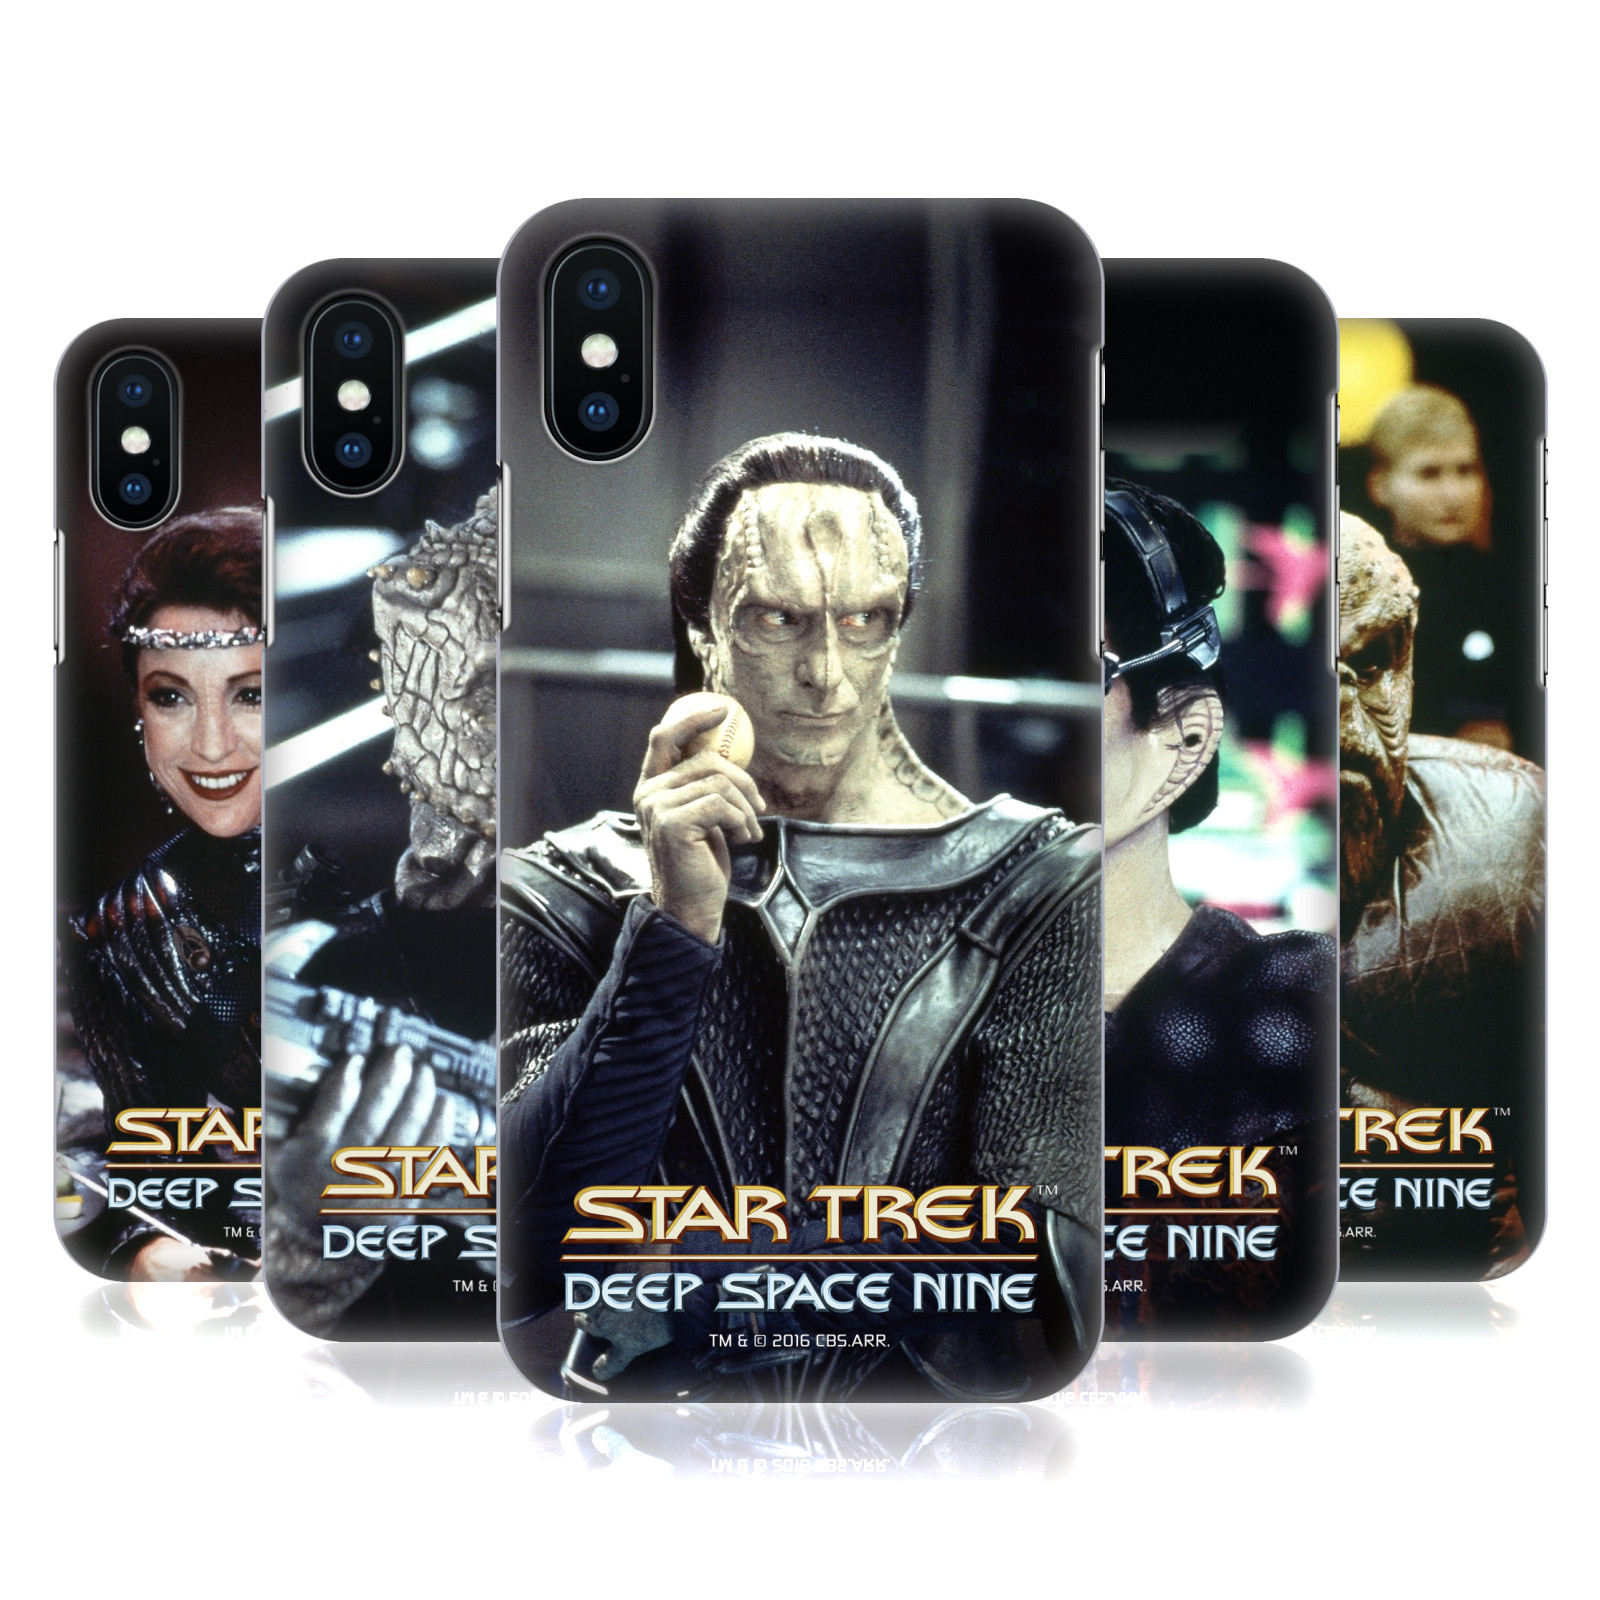 Star Trek Iconic Aliens DS9